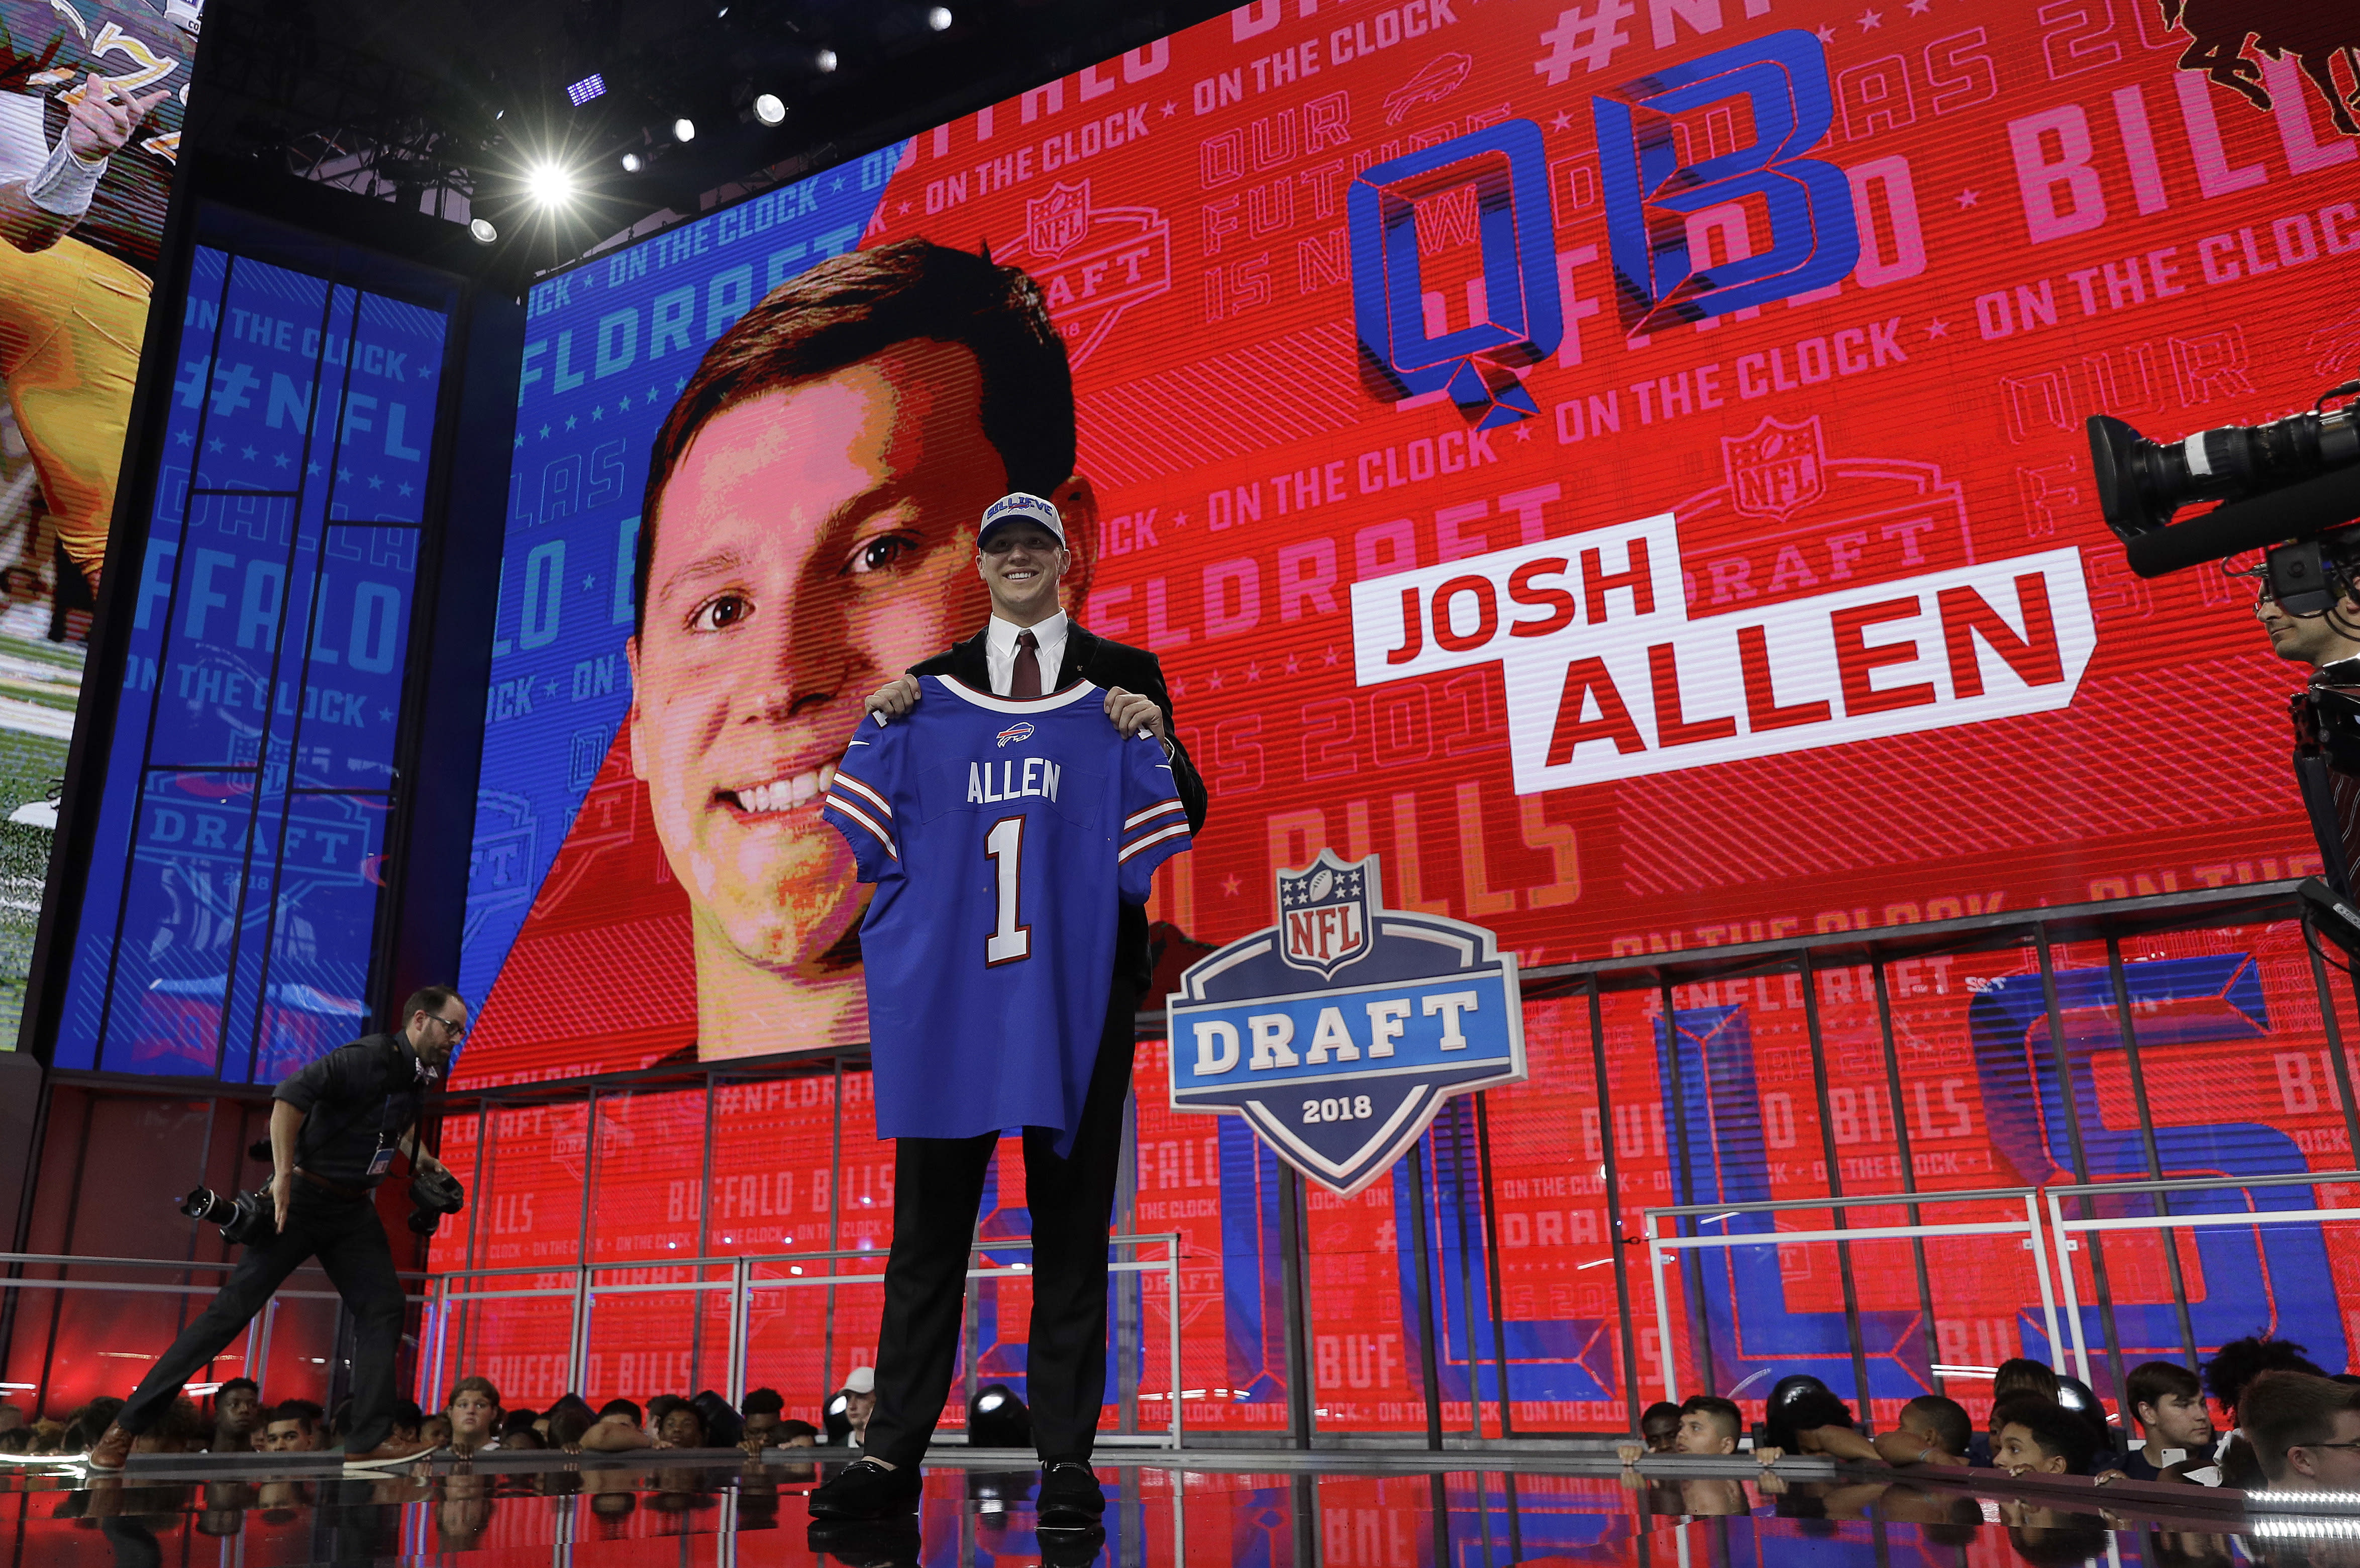 Bills captain says Josh Allen will have to explain his controversial tweets